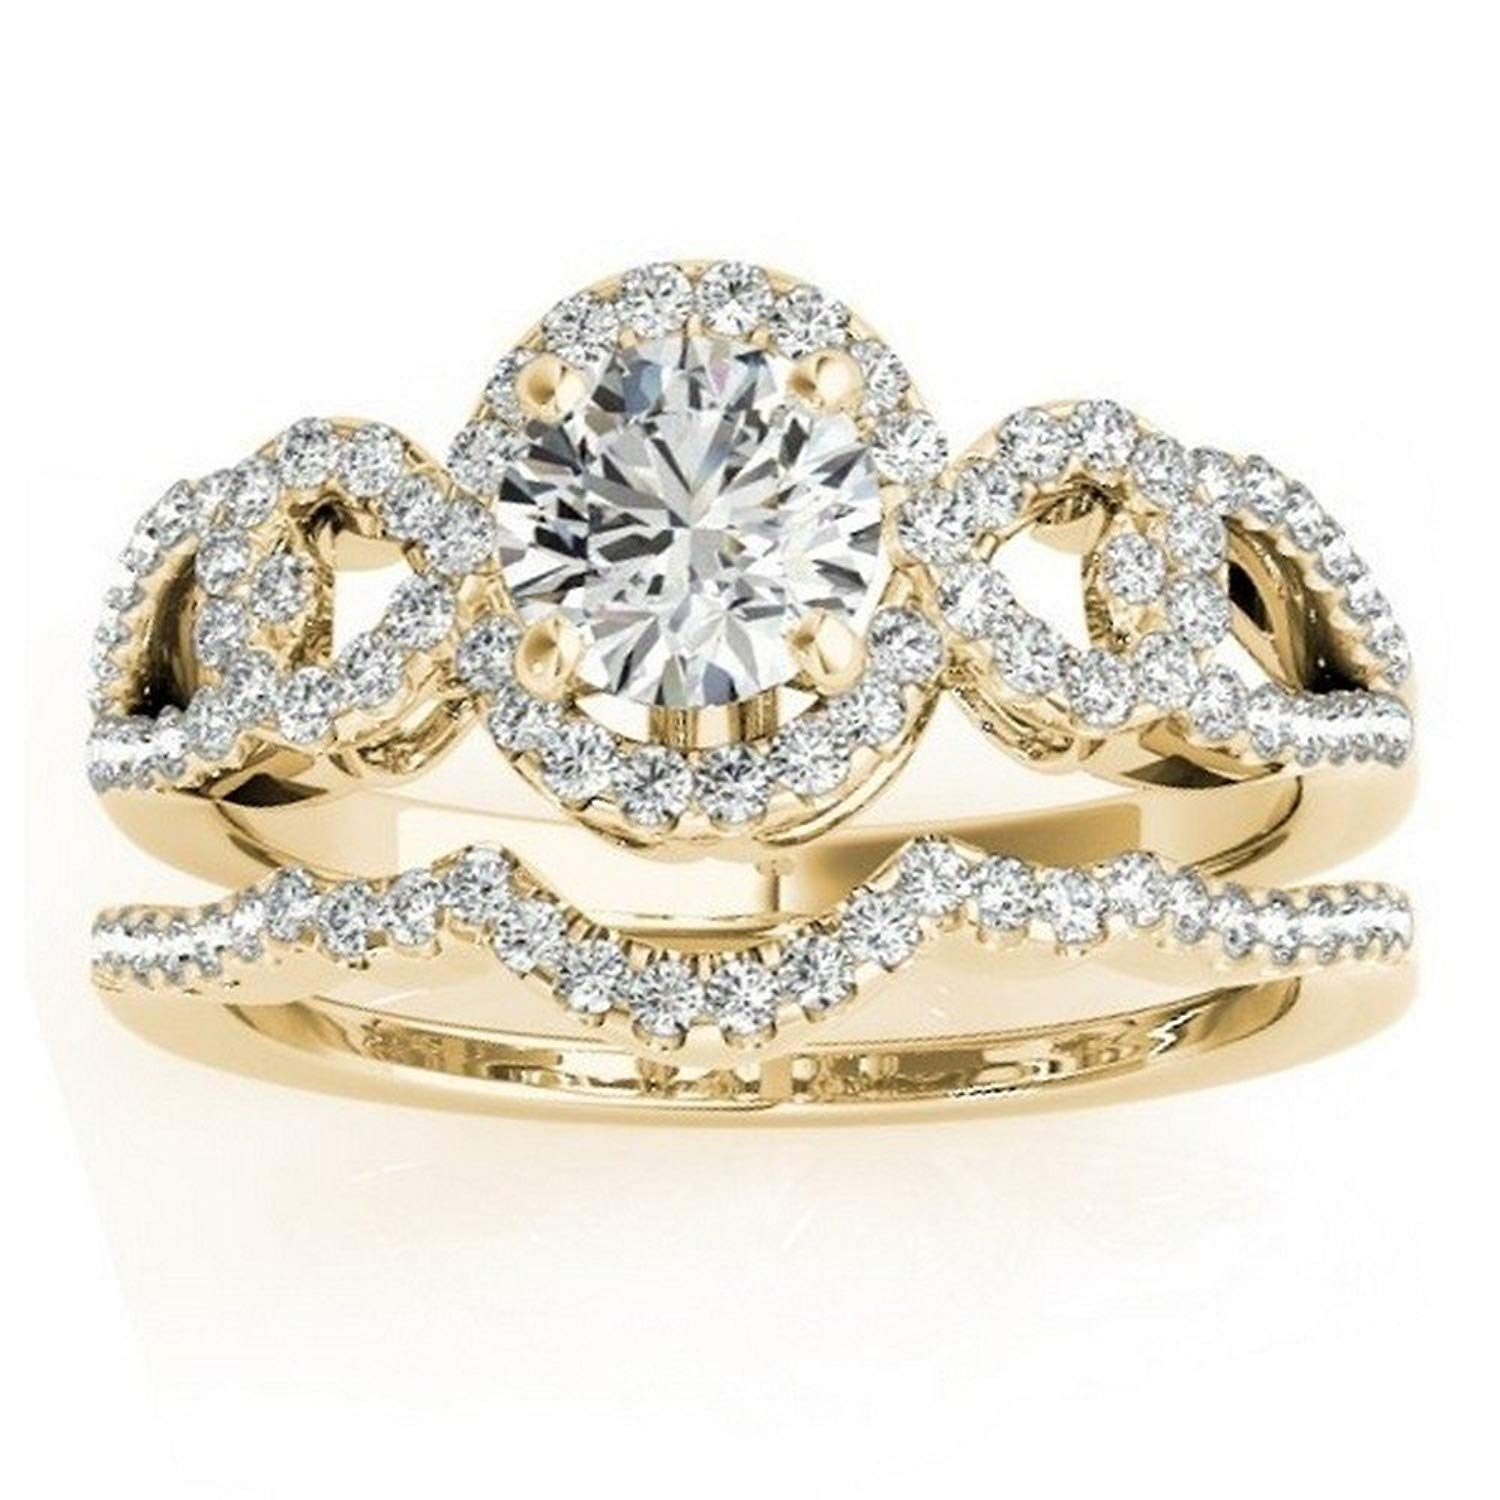 Halo Diamond Engagement Ring Setting and Contour Wedding Band Bridal Set in 14k Yellow Gold 0.50ct